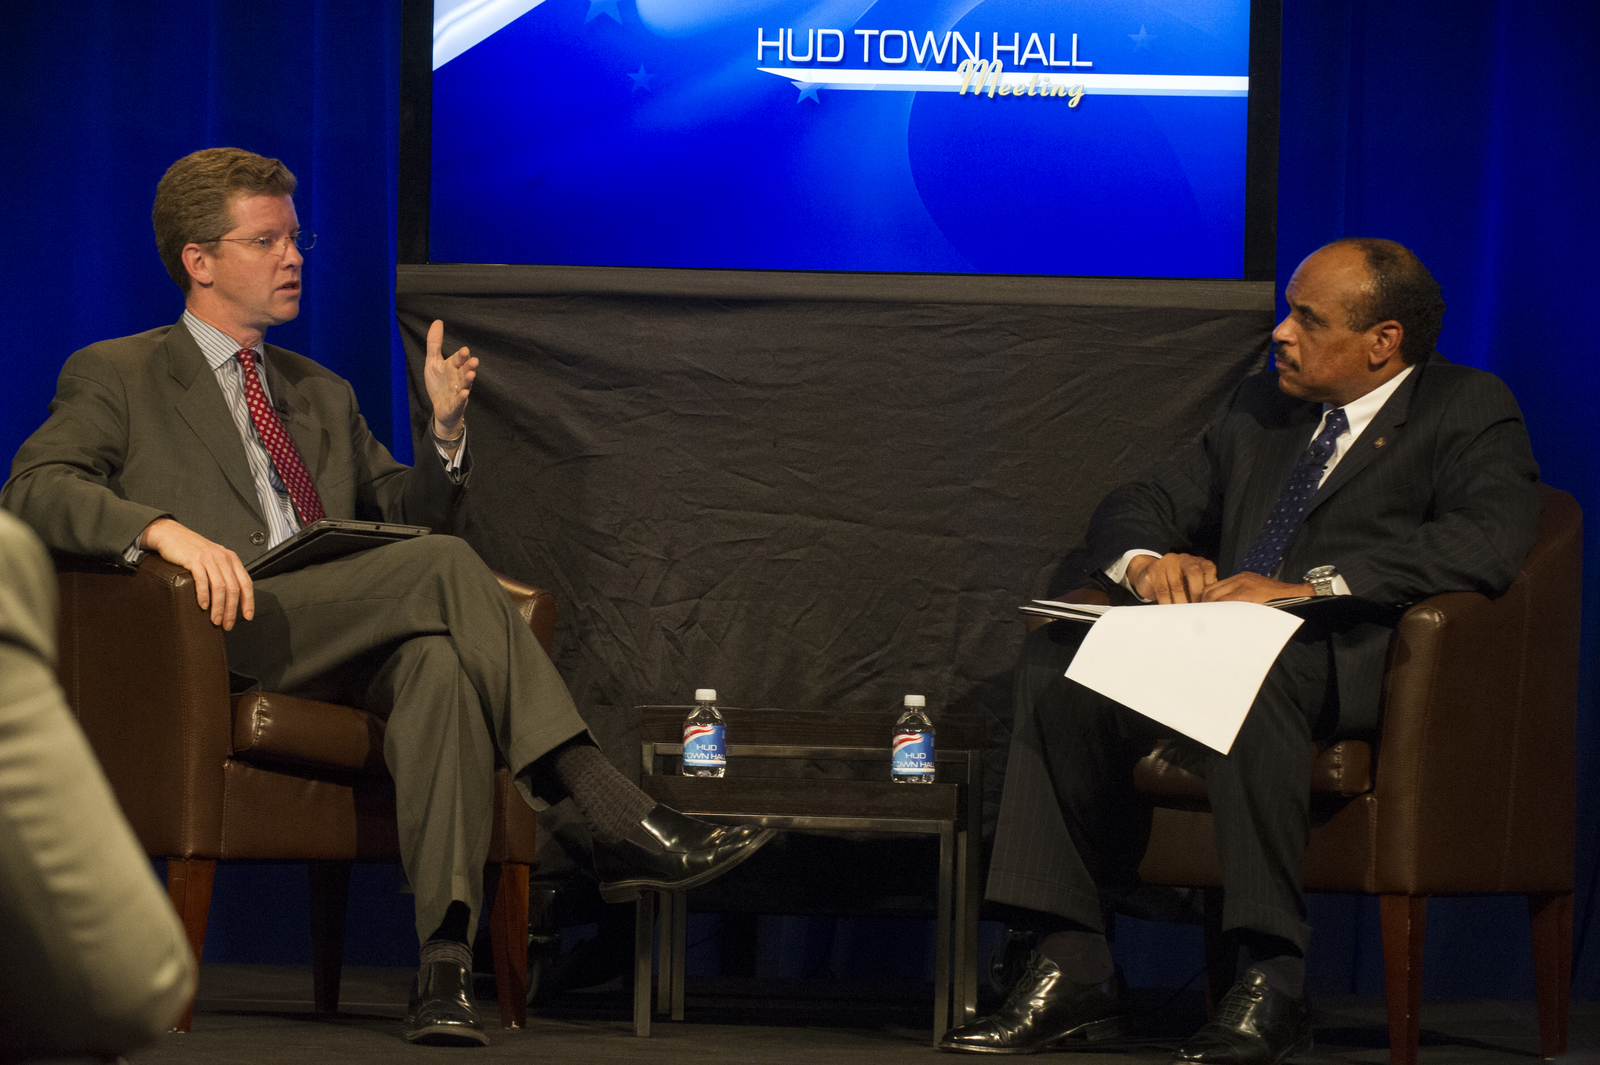 Town Hall Meeting  [at HUD headquarters, led by Secretary Shaun Donovan, Acting Deputy Secretary Estelle Richman, and Deputy Assistant Secretary for Public Affairs Jerry Brown]